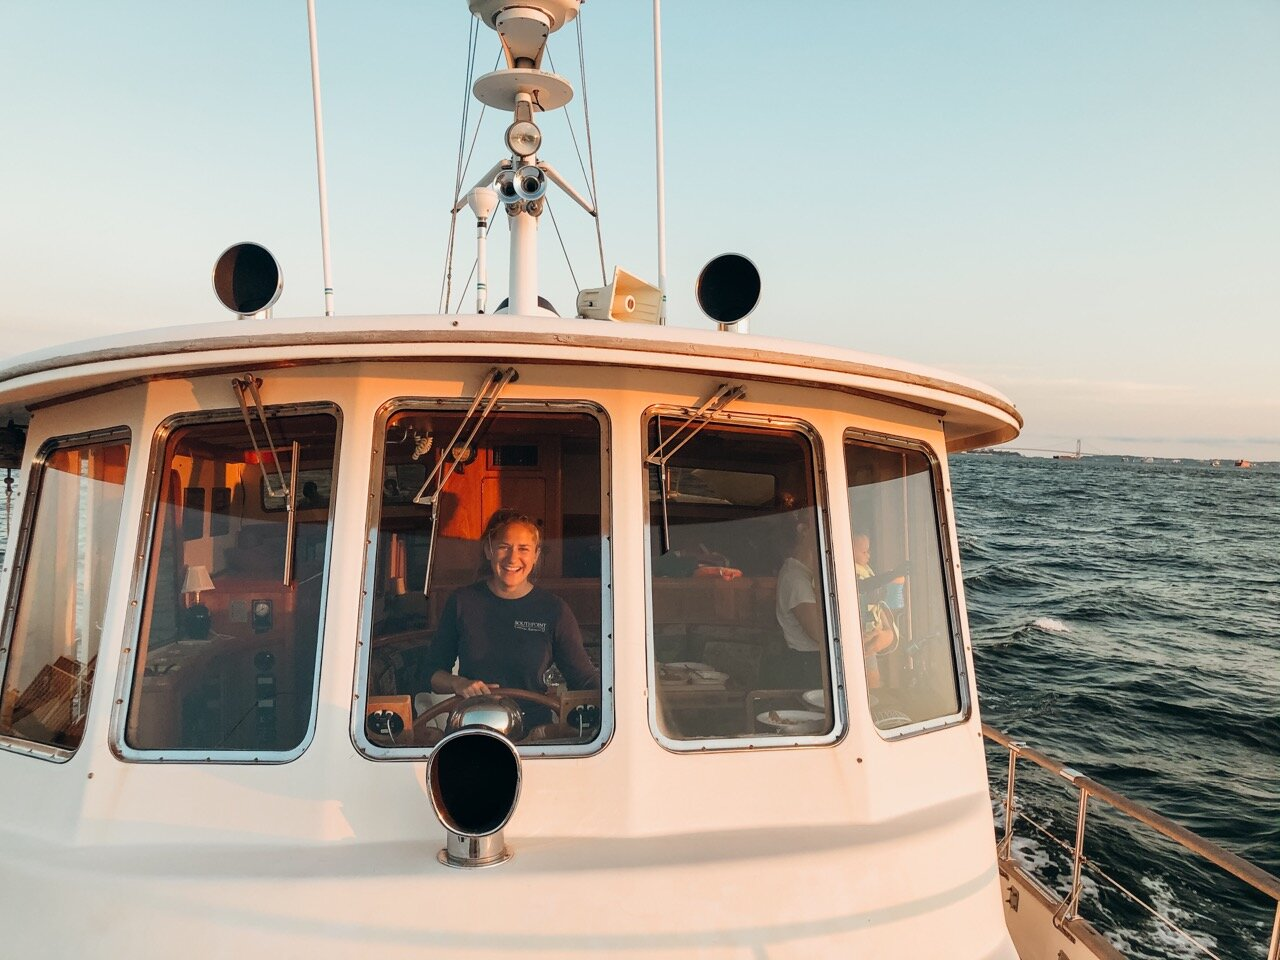 Piloting her boat during an afternoon cruise in the New York Harbor.